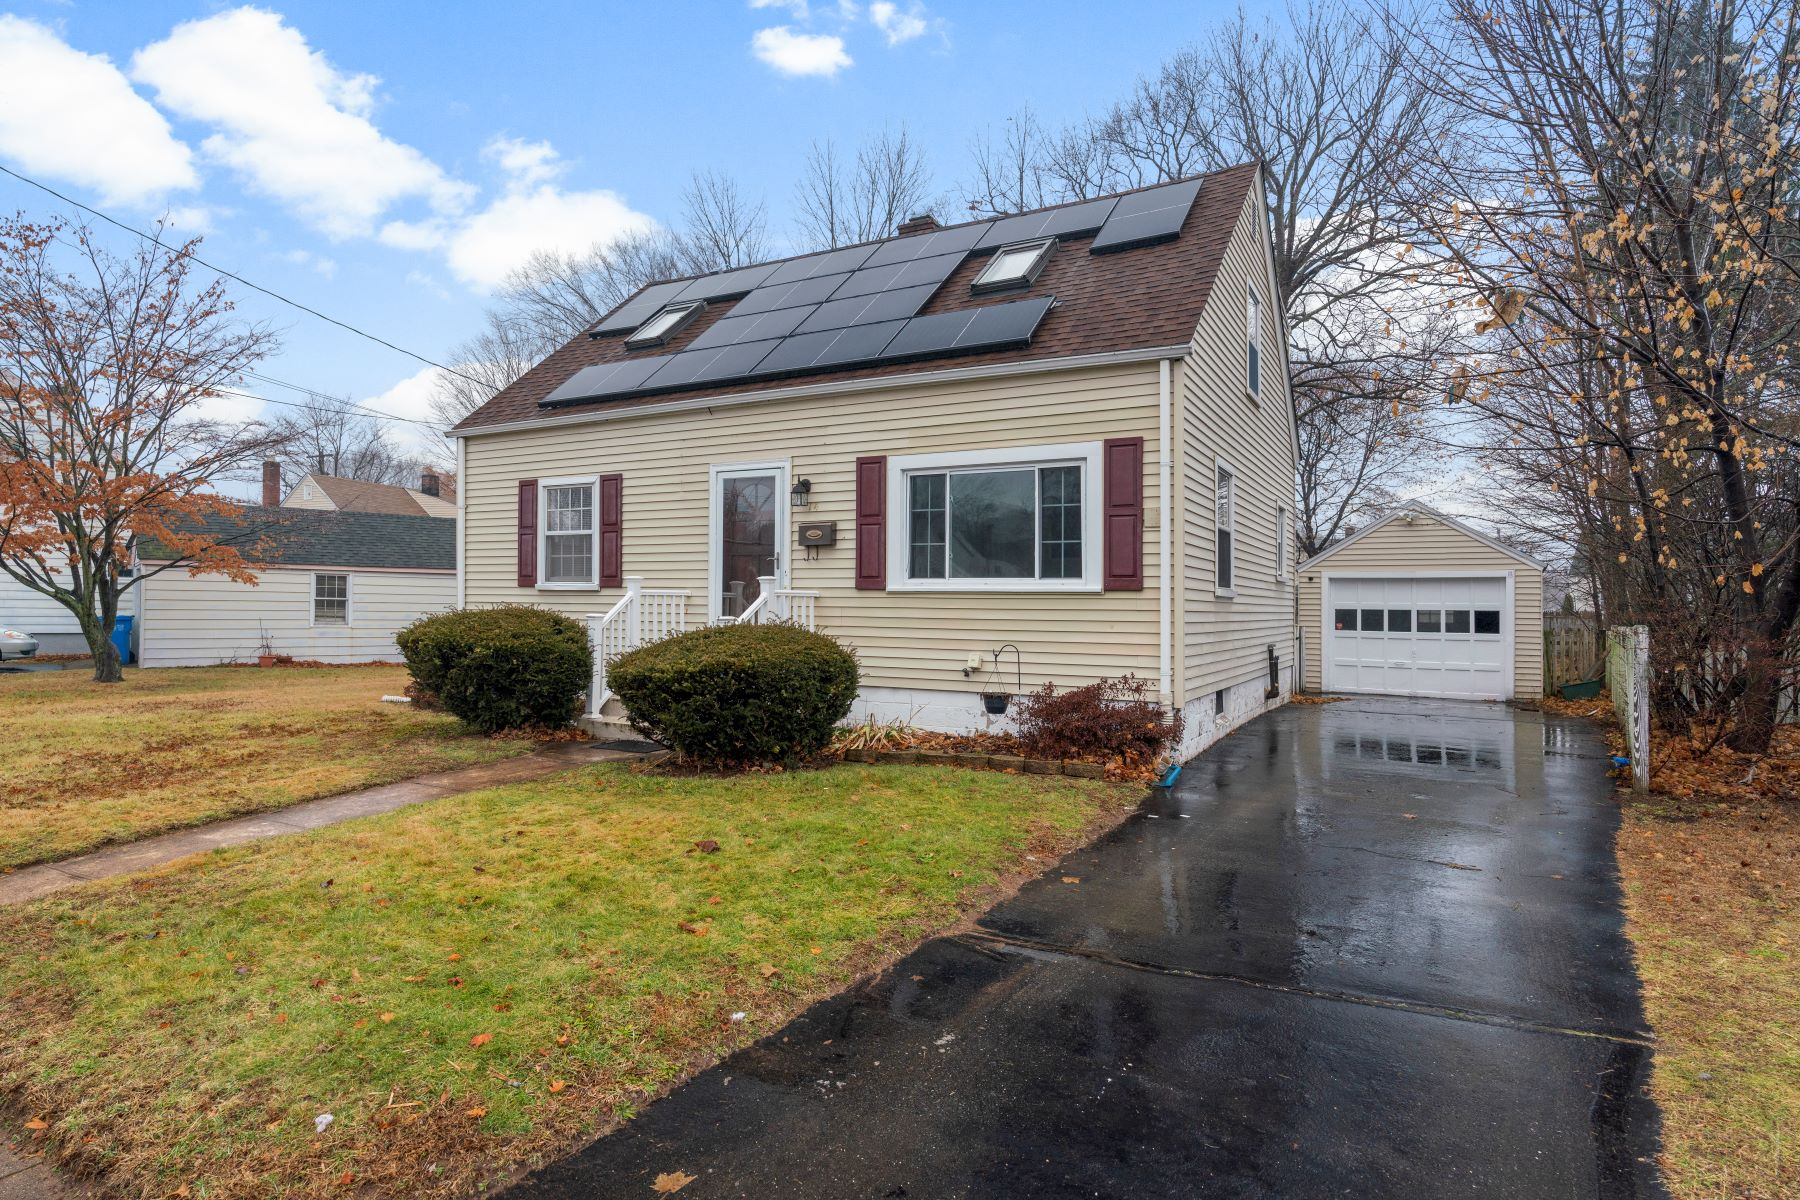 Single Family Homes for Sale at 14 Rockwood Road 14 Rockwood Rd, Hamden, Connecticut 06514 United States